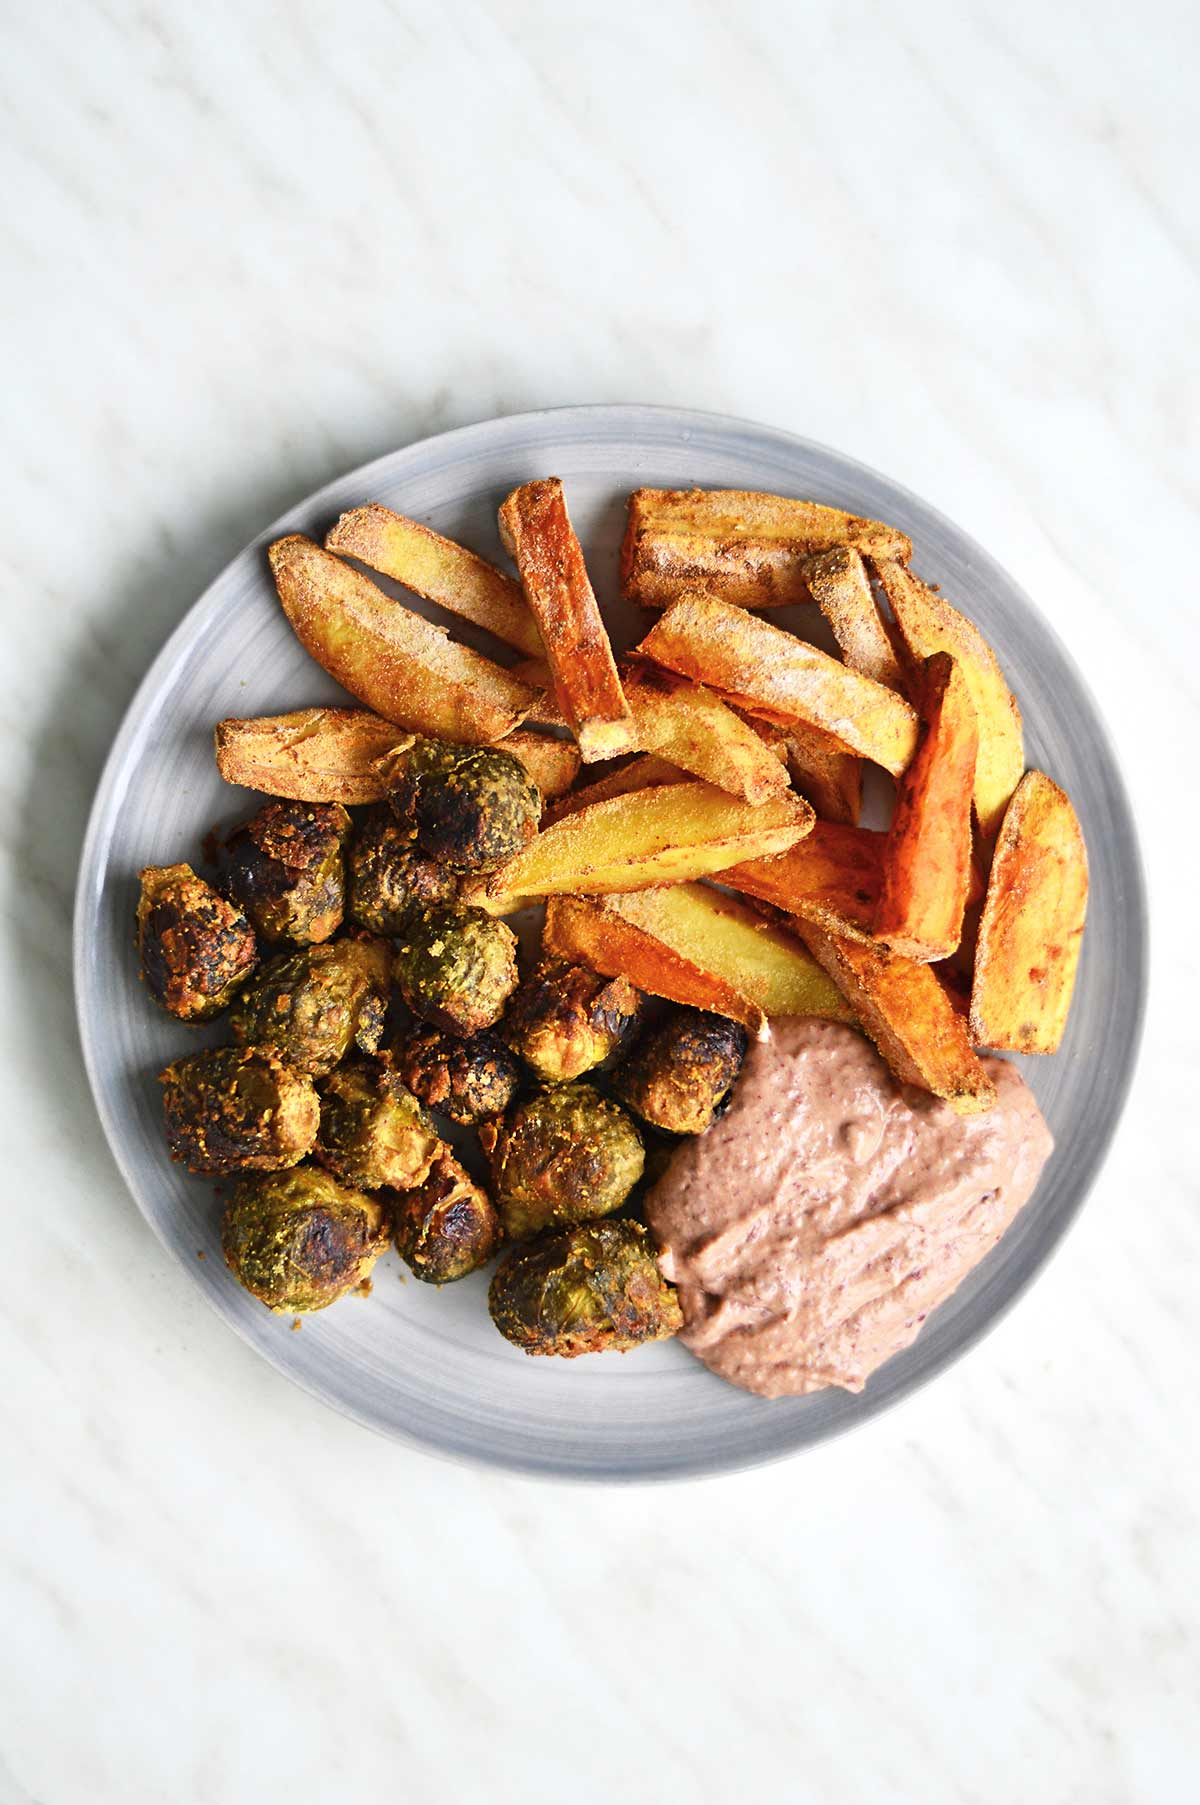 Oil-Free Fries with Brussels Sprouts and Hummus